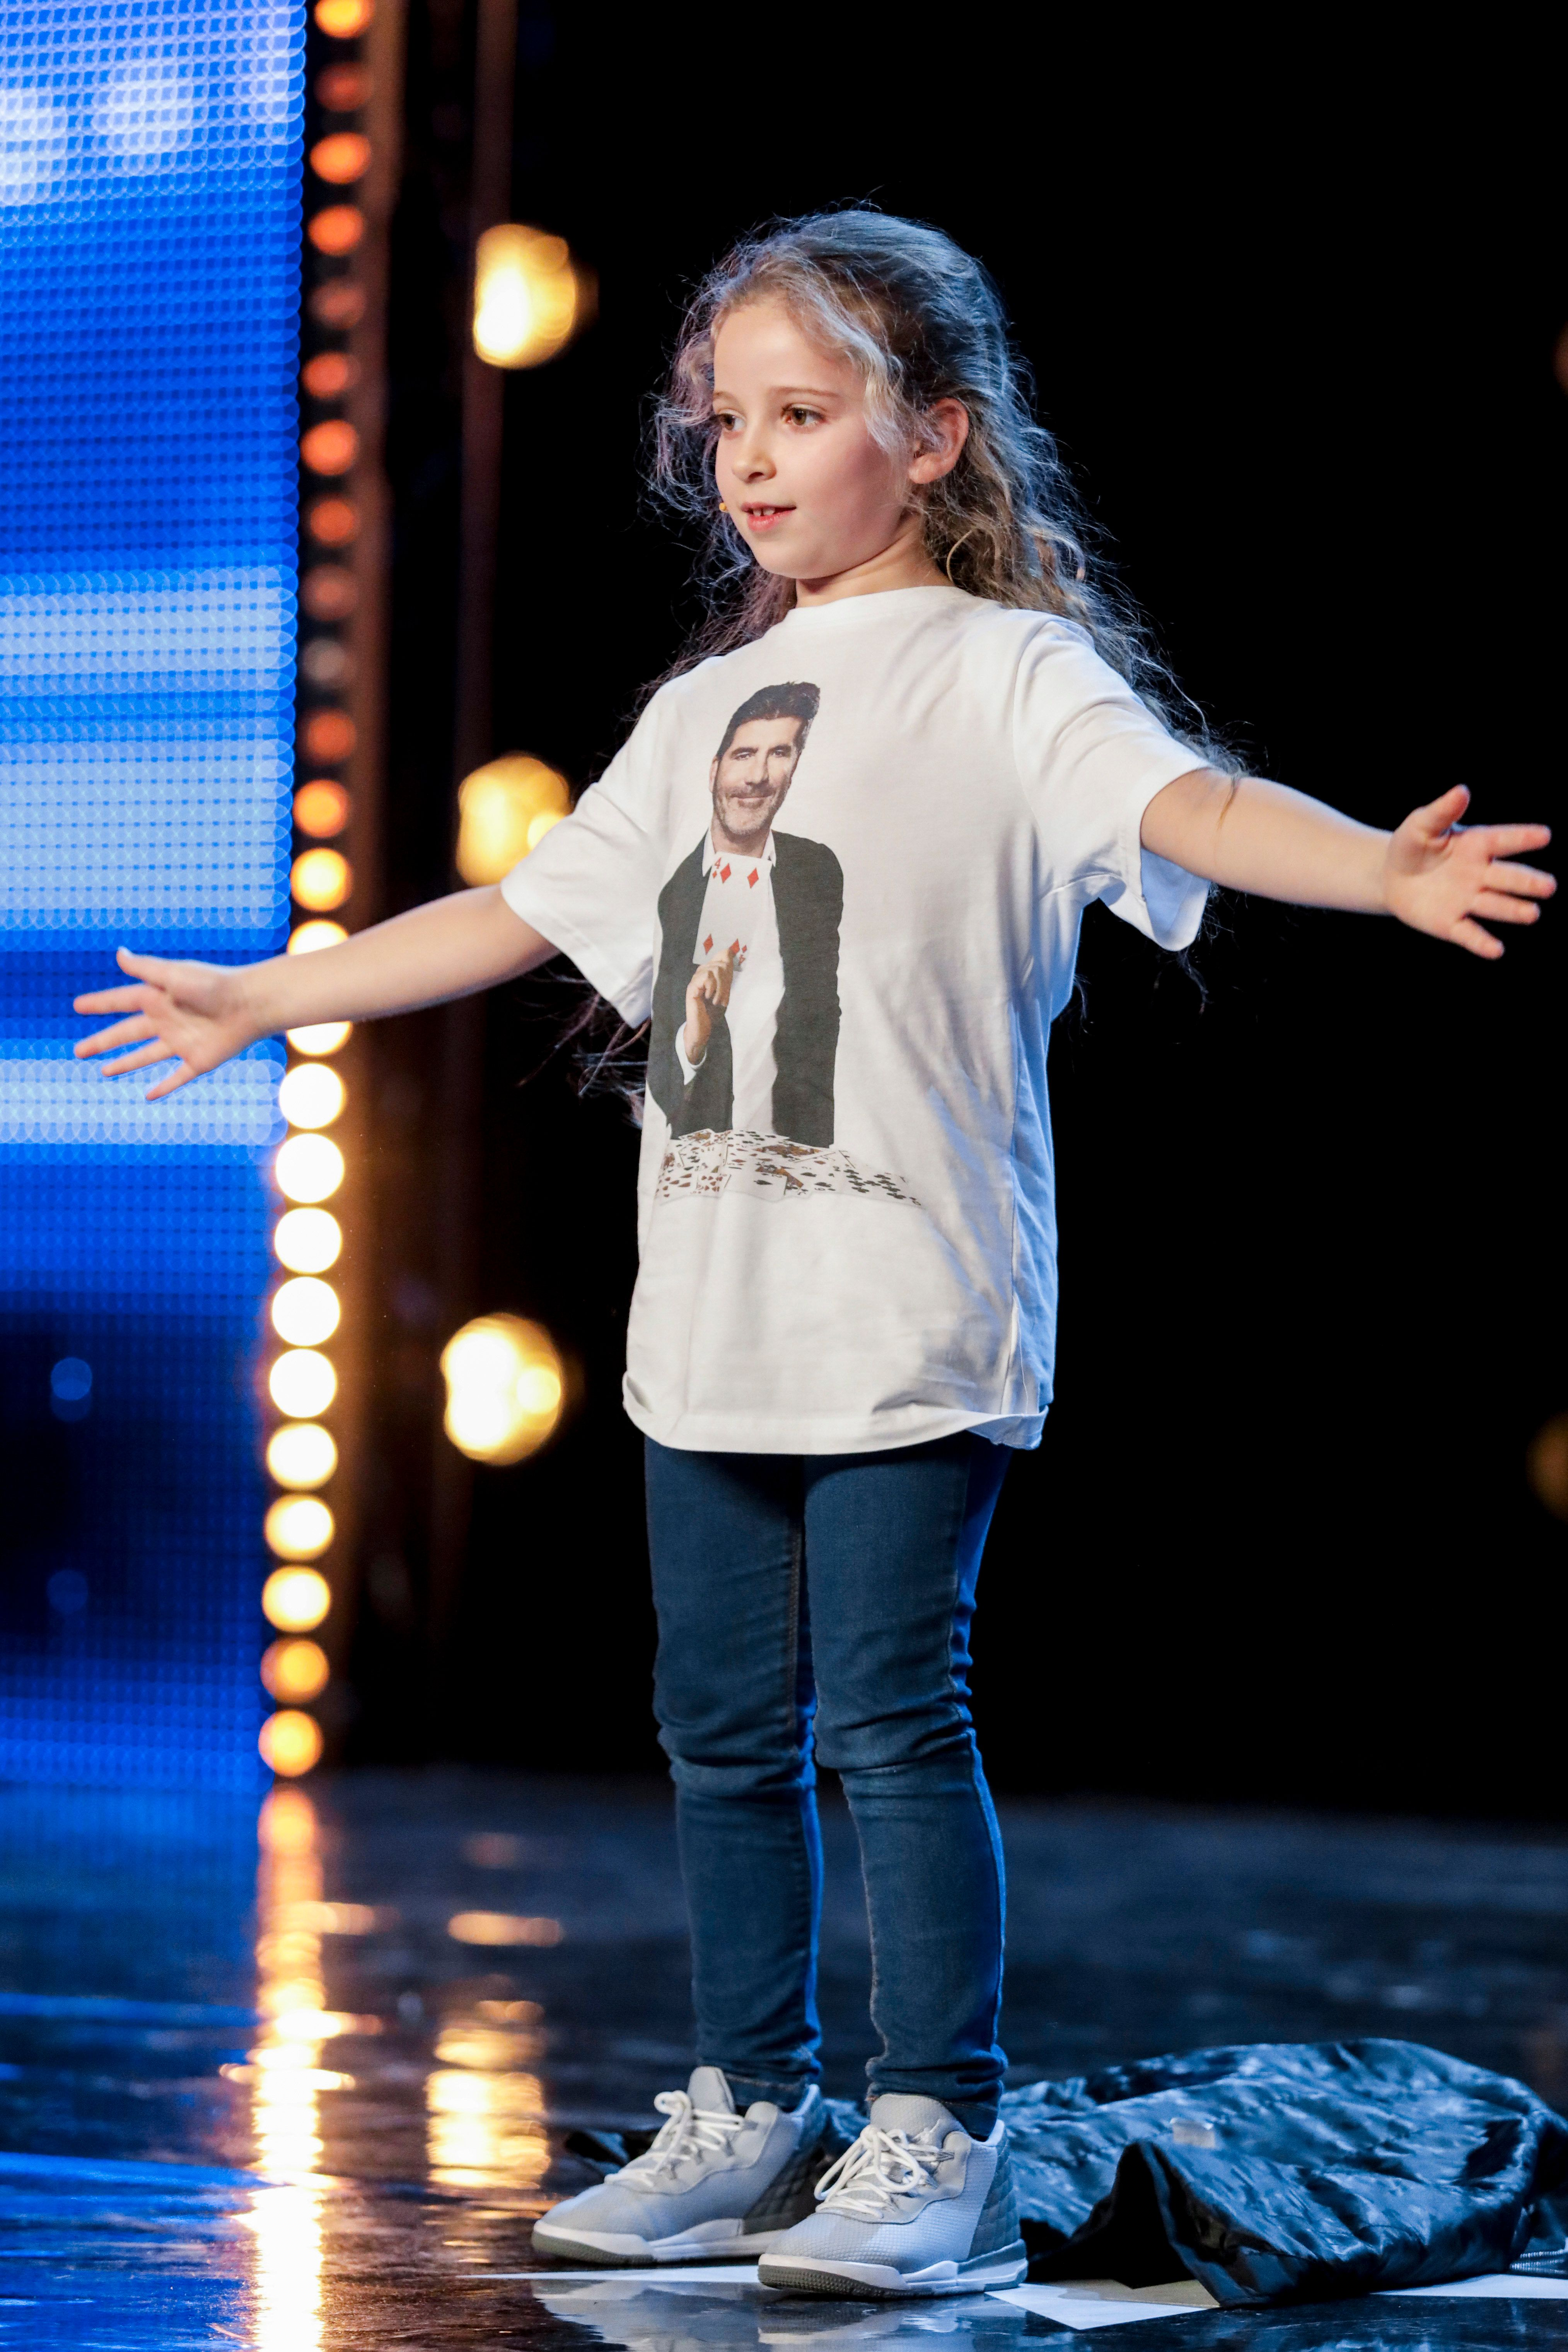 Issy's impressive trick wowed the